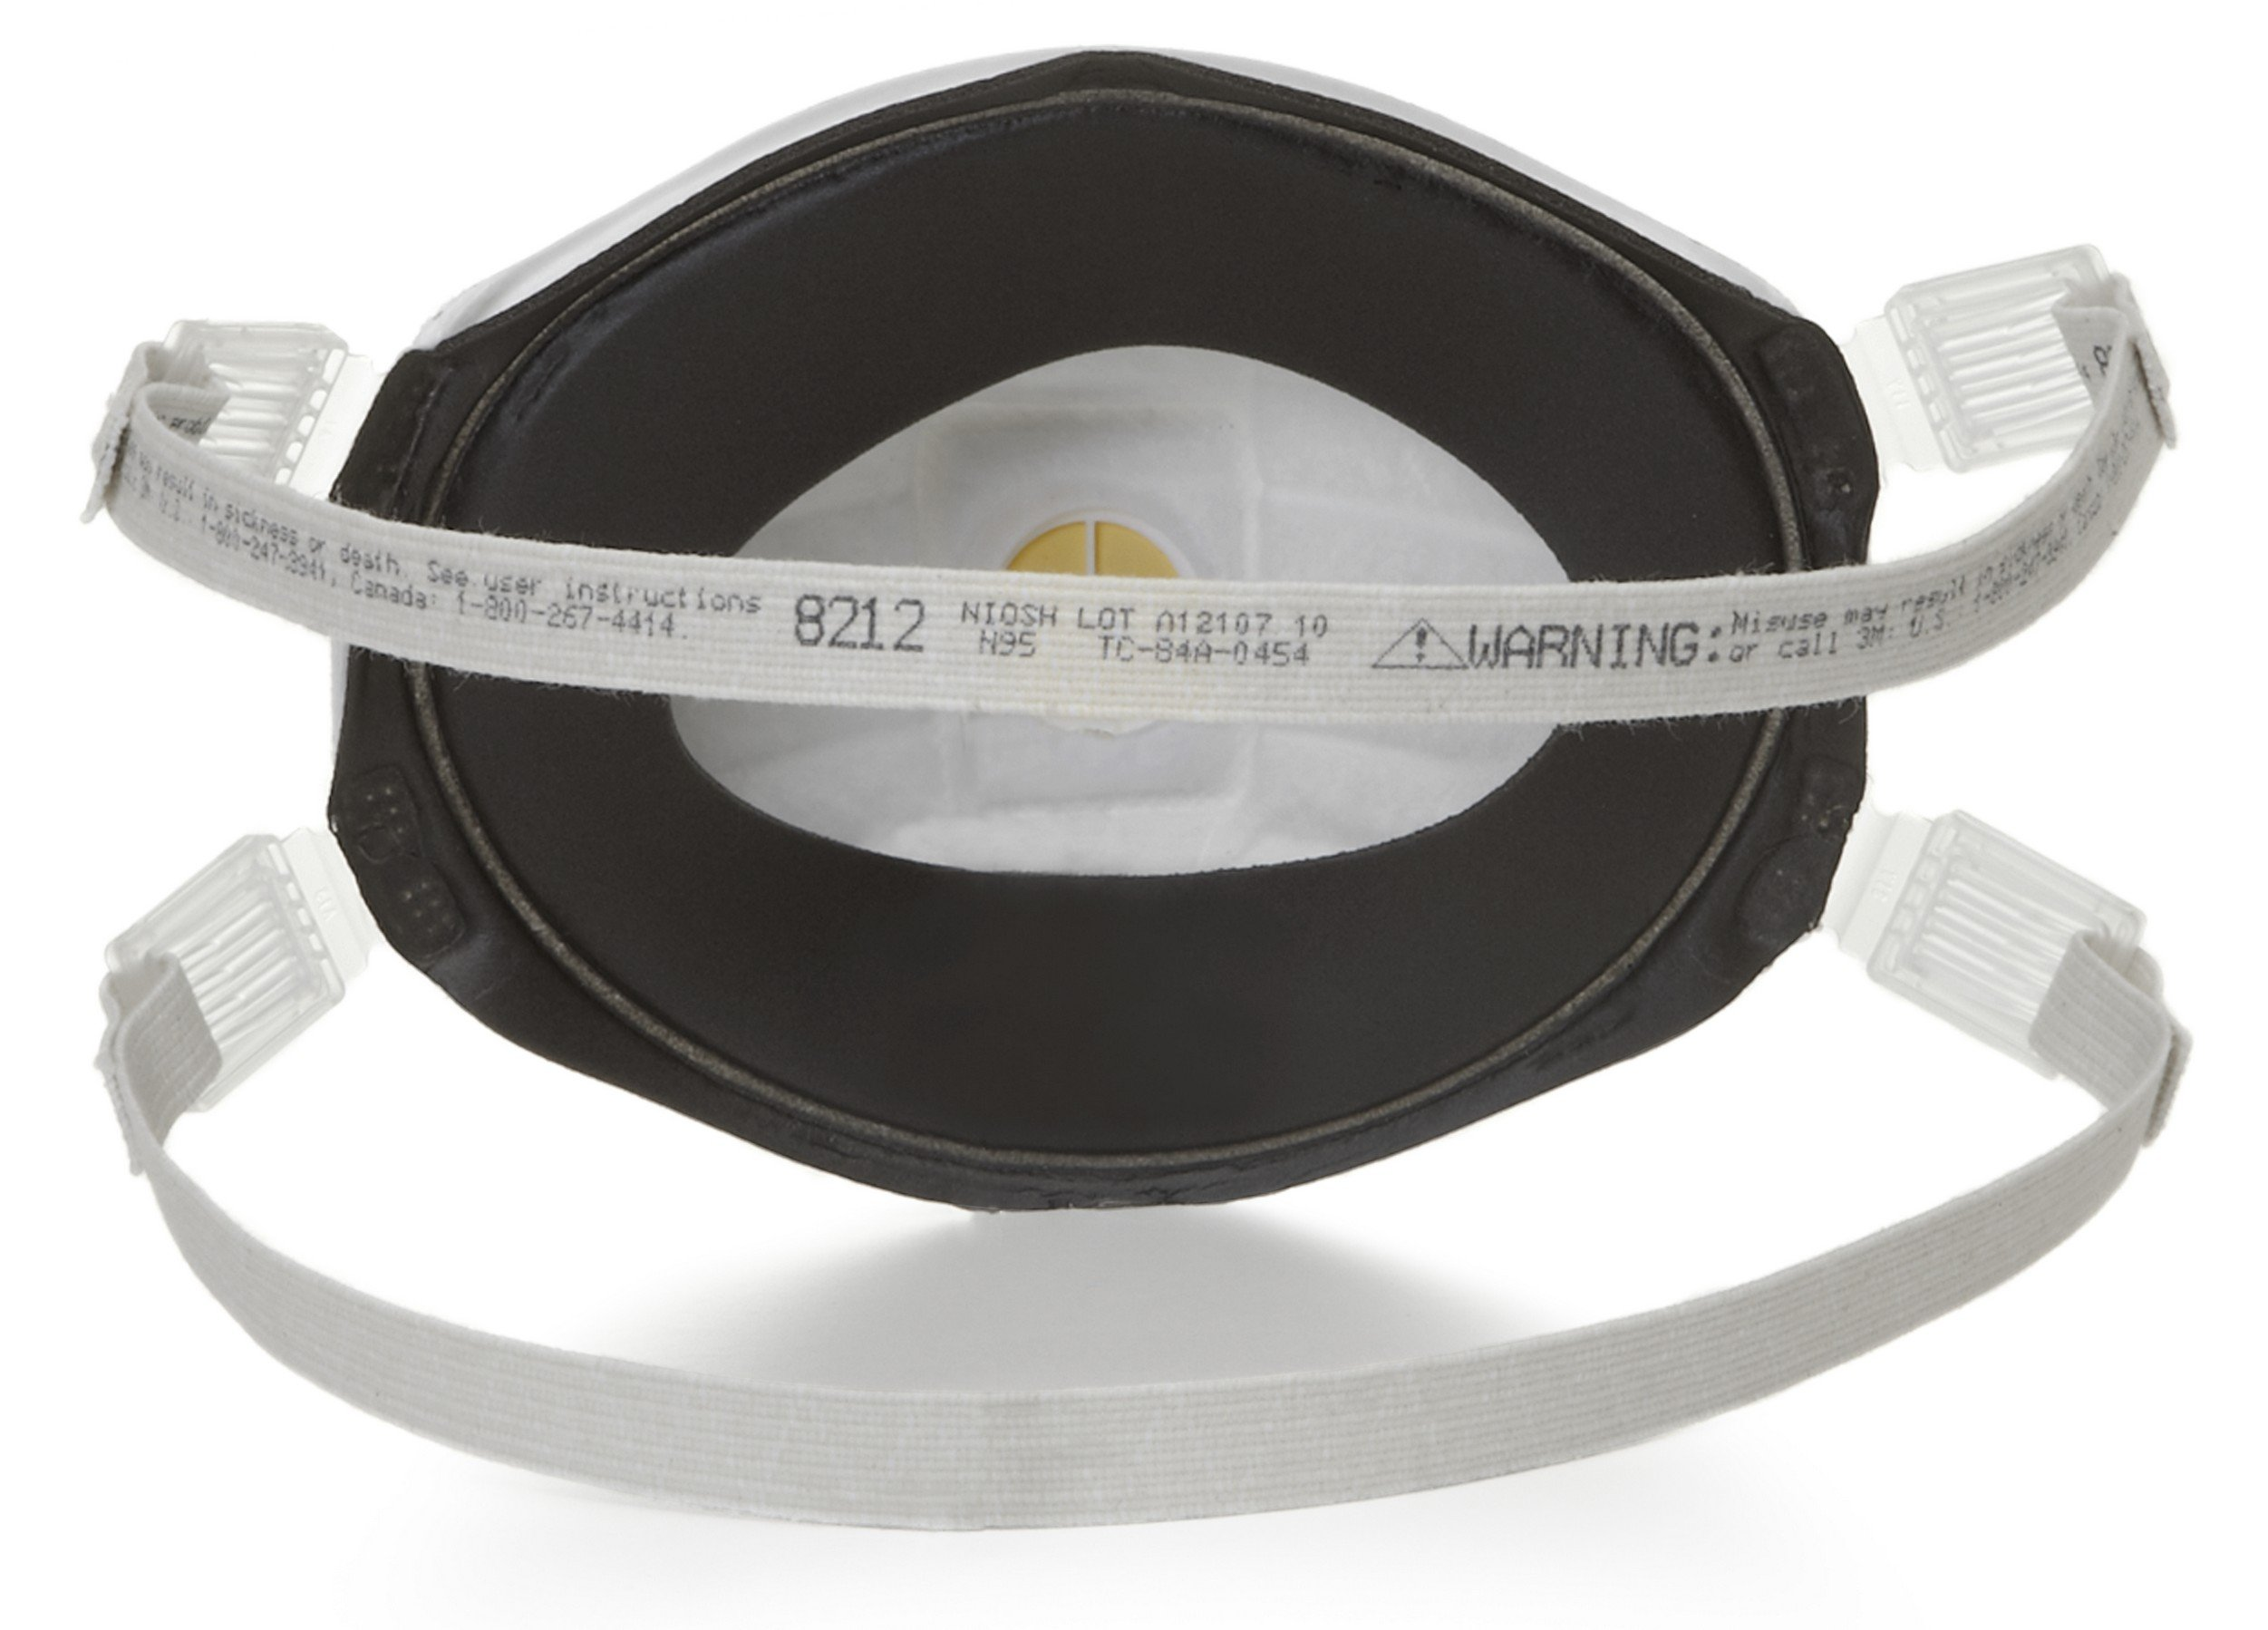 3M 54141 Particulate Welding Respirator 8212, N95, with Faceseal (Pack of 10) by 3M Personal Protective Equipment (Image #2)